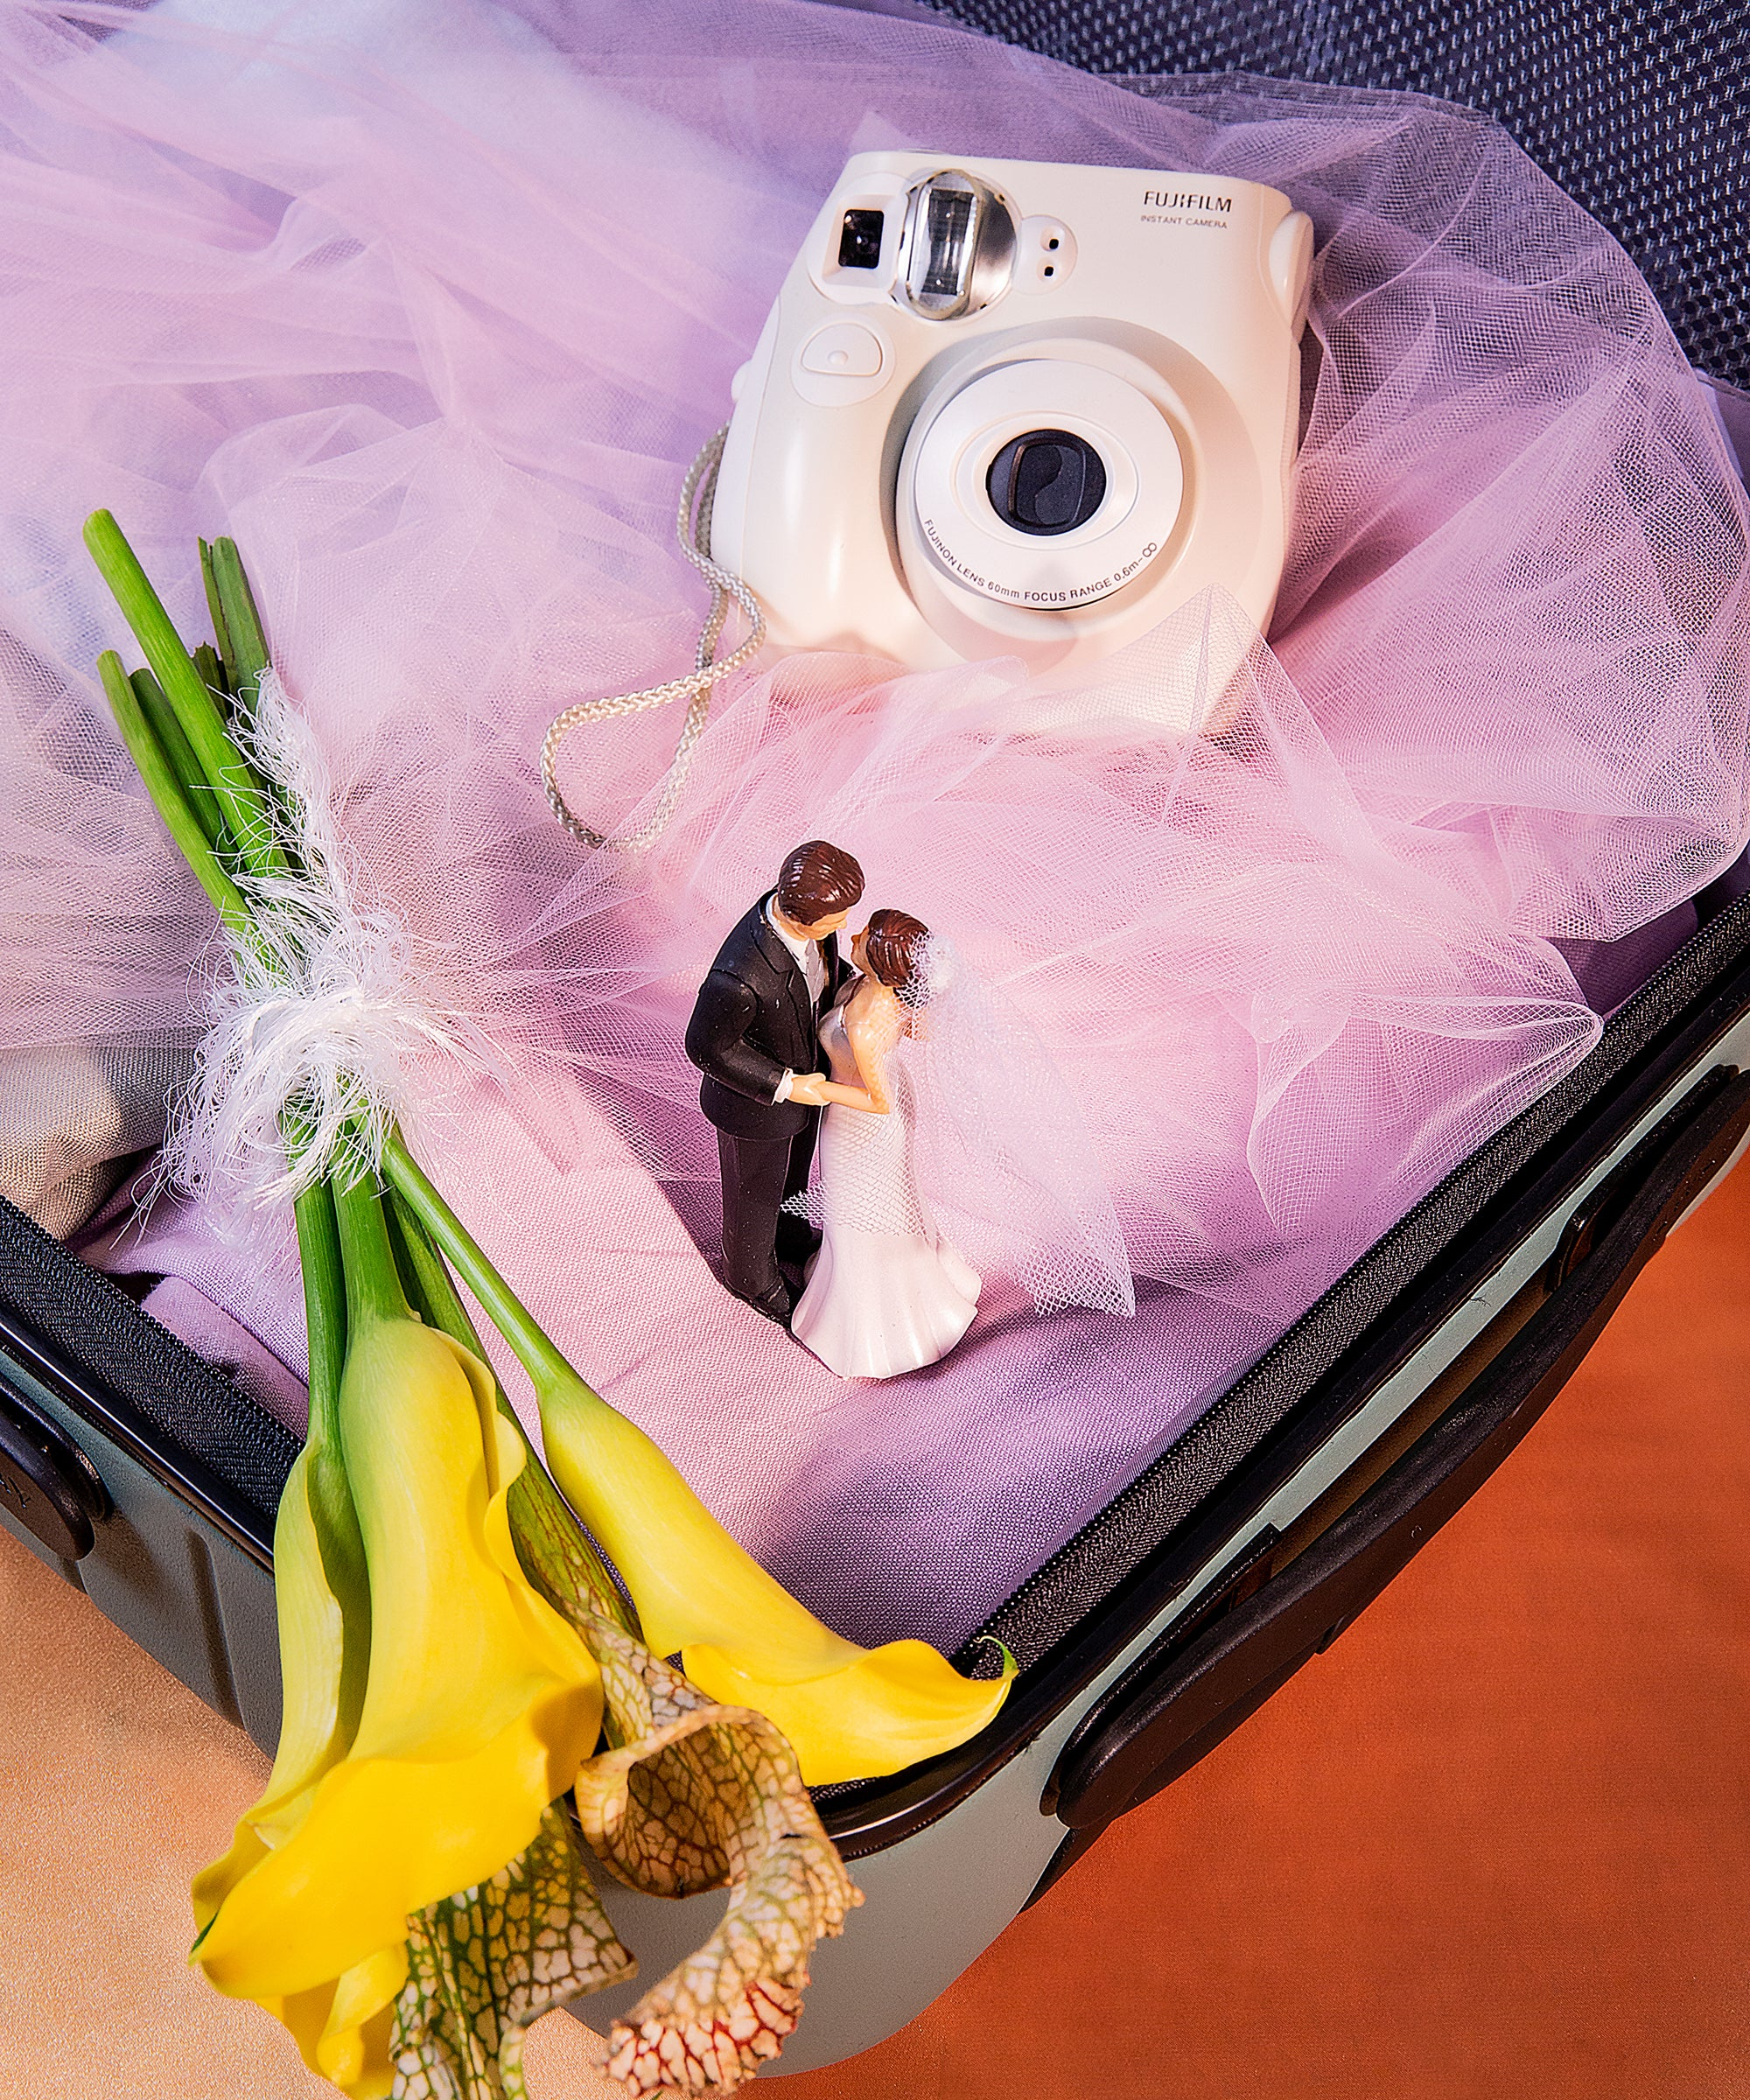 7 Online Registries To Help Plan And Gift An Epic Honeymoon